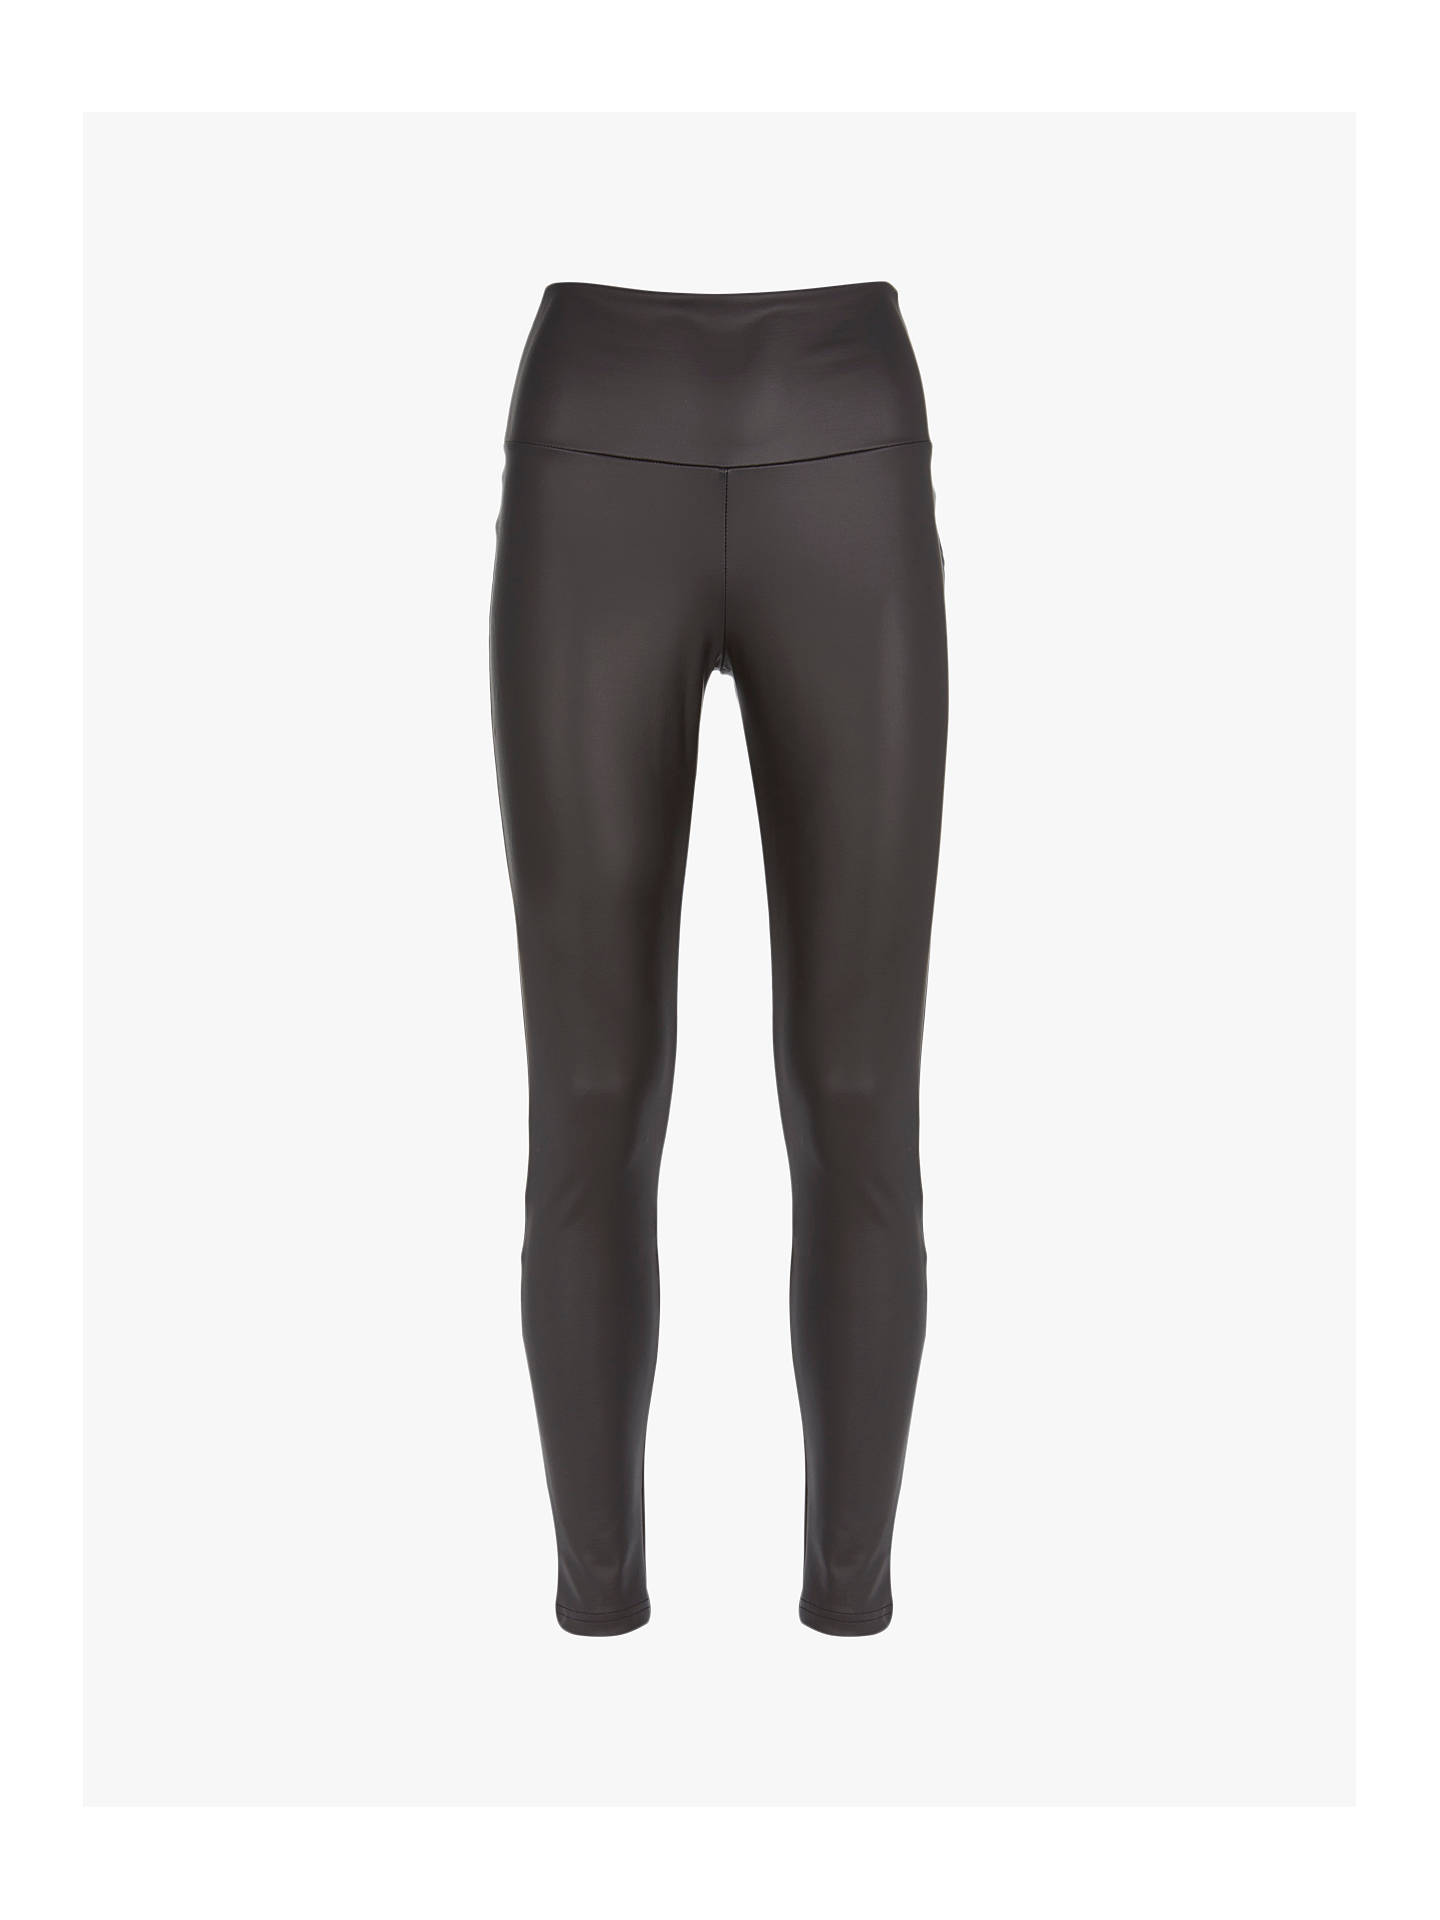 19e4497145cbd Buy Mint Velvet Faux Leather Leggings, Black, XS S Online at johnlewis.com  ...